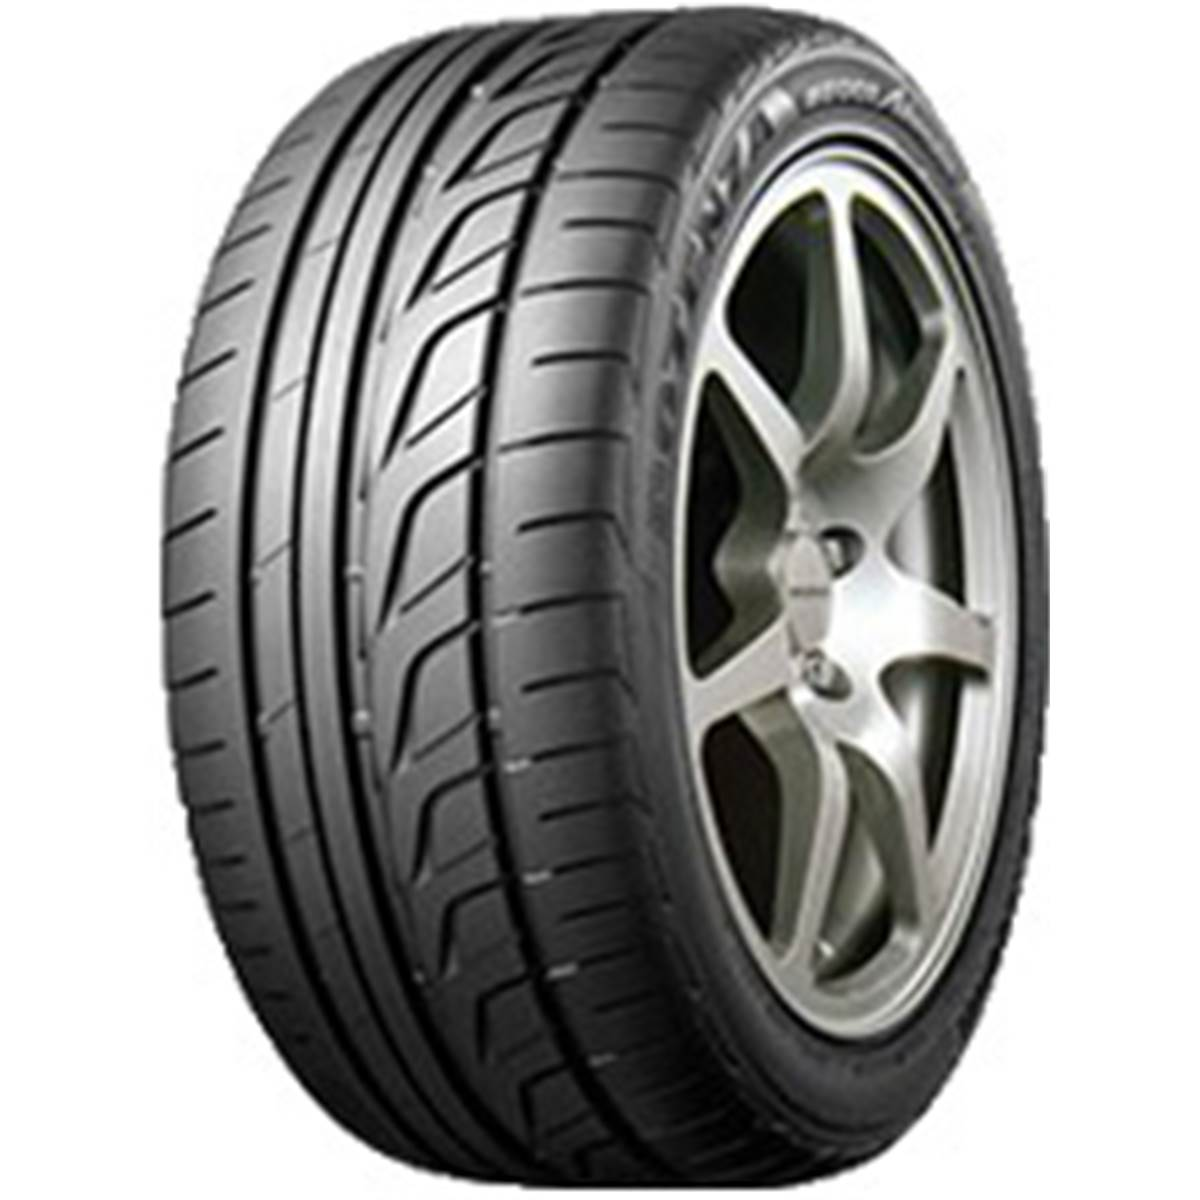 Pneu Bridgestone 205/50R15 86W Potenza Adrenalin Re002